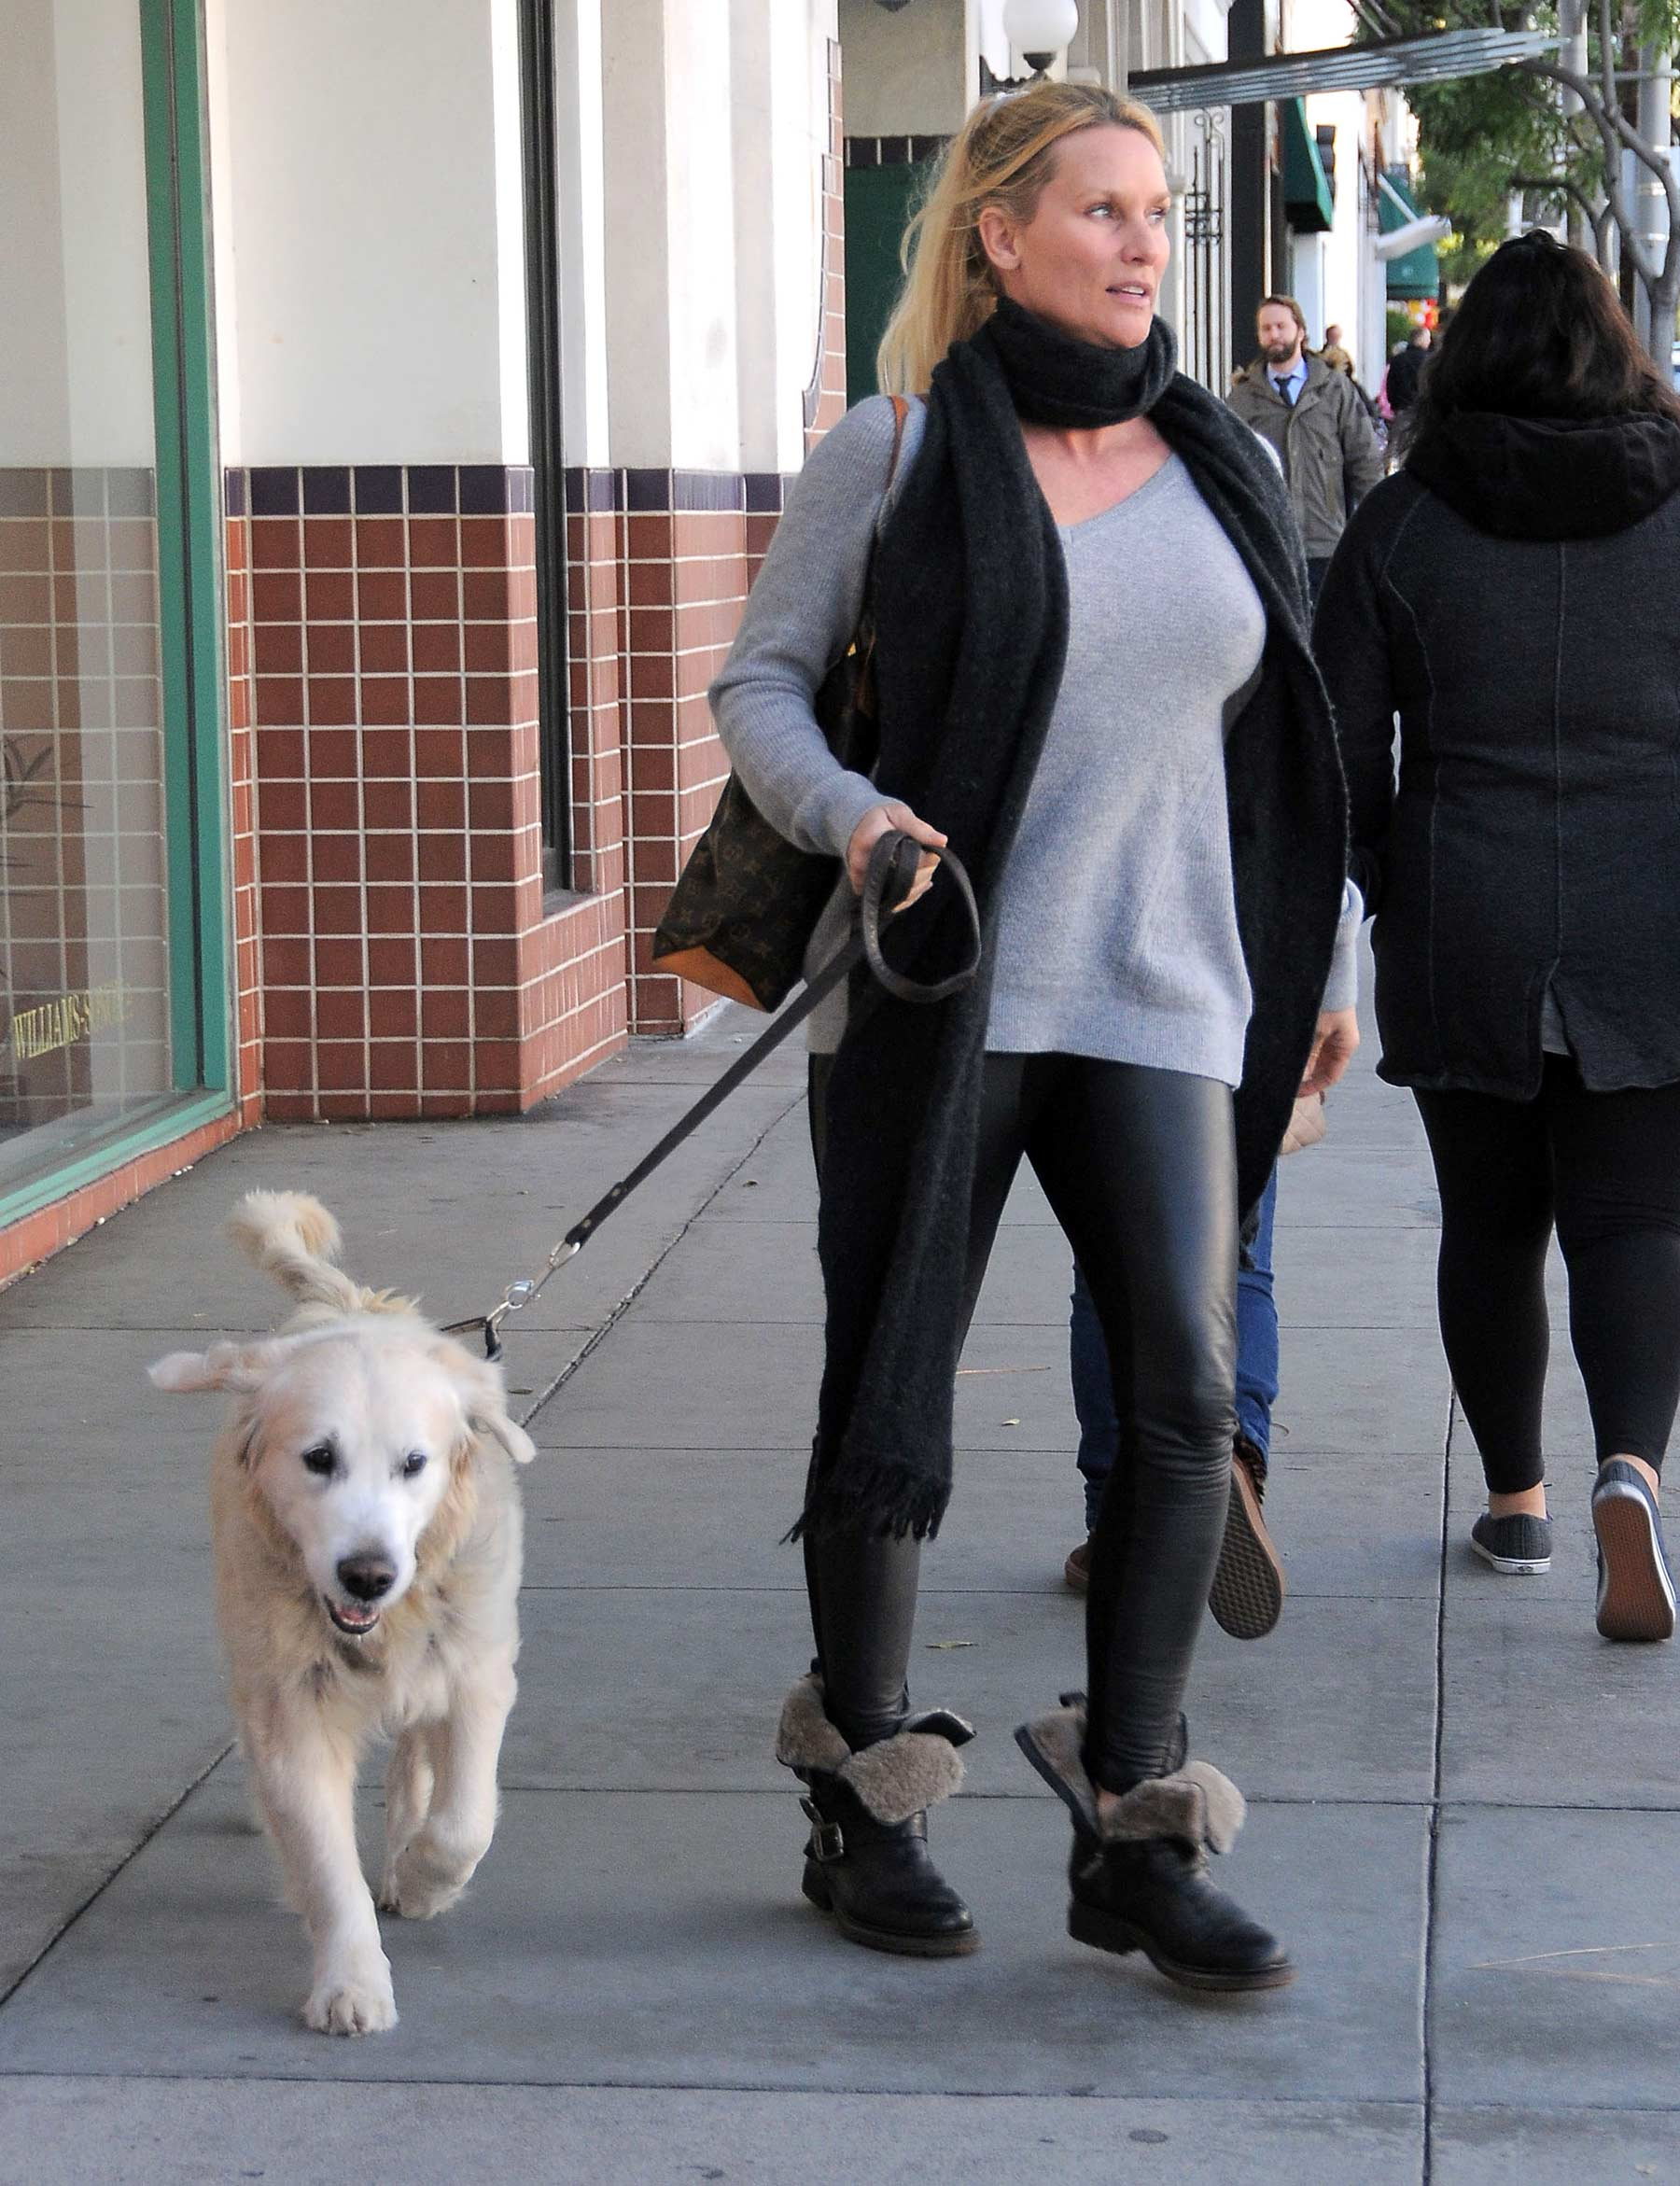 Nicollette Sheridan out with her dog in Beverly Hills